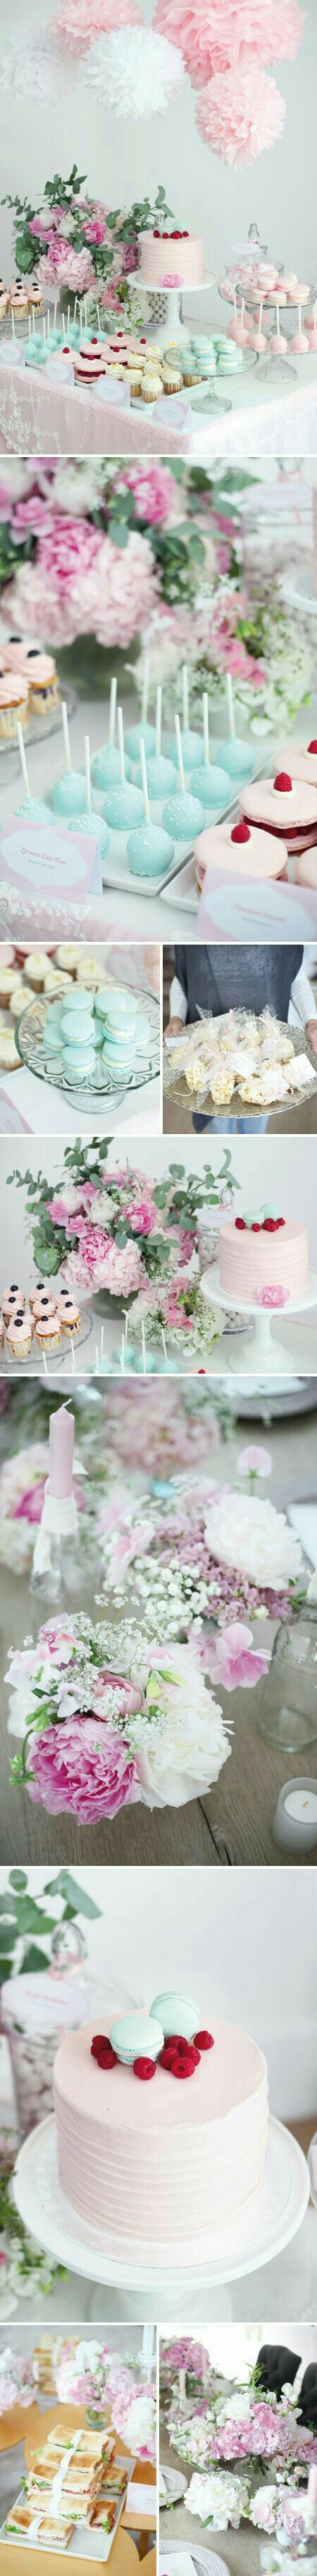 Corporate Party Themes! Company parties can be pretty too! #venue221 #V221